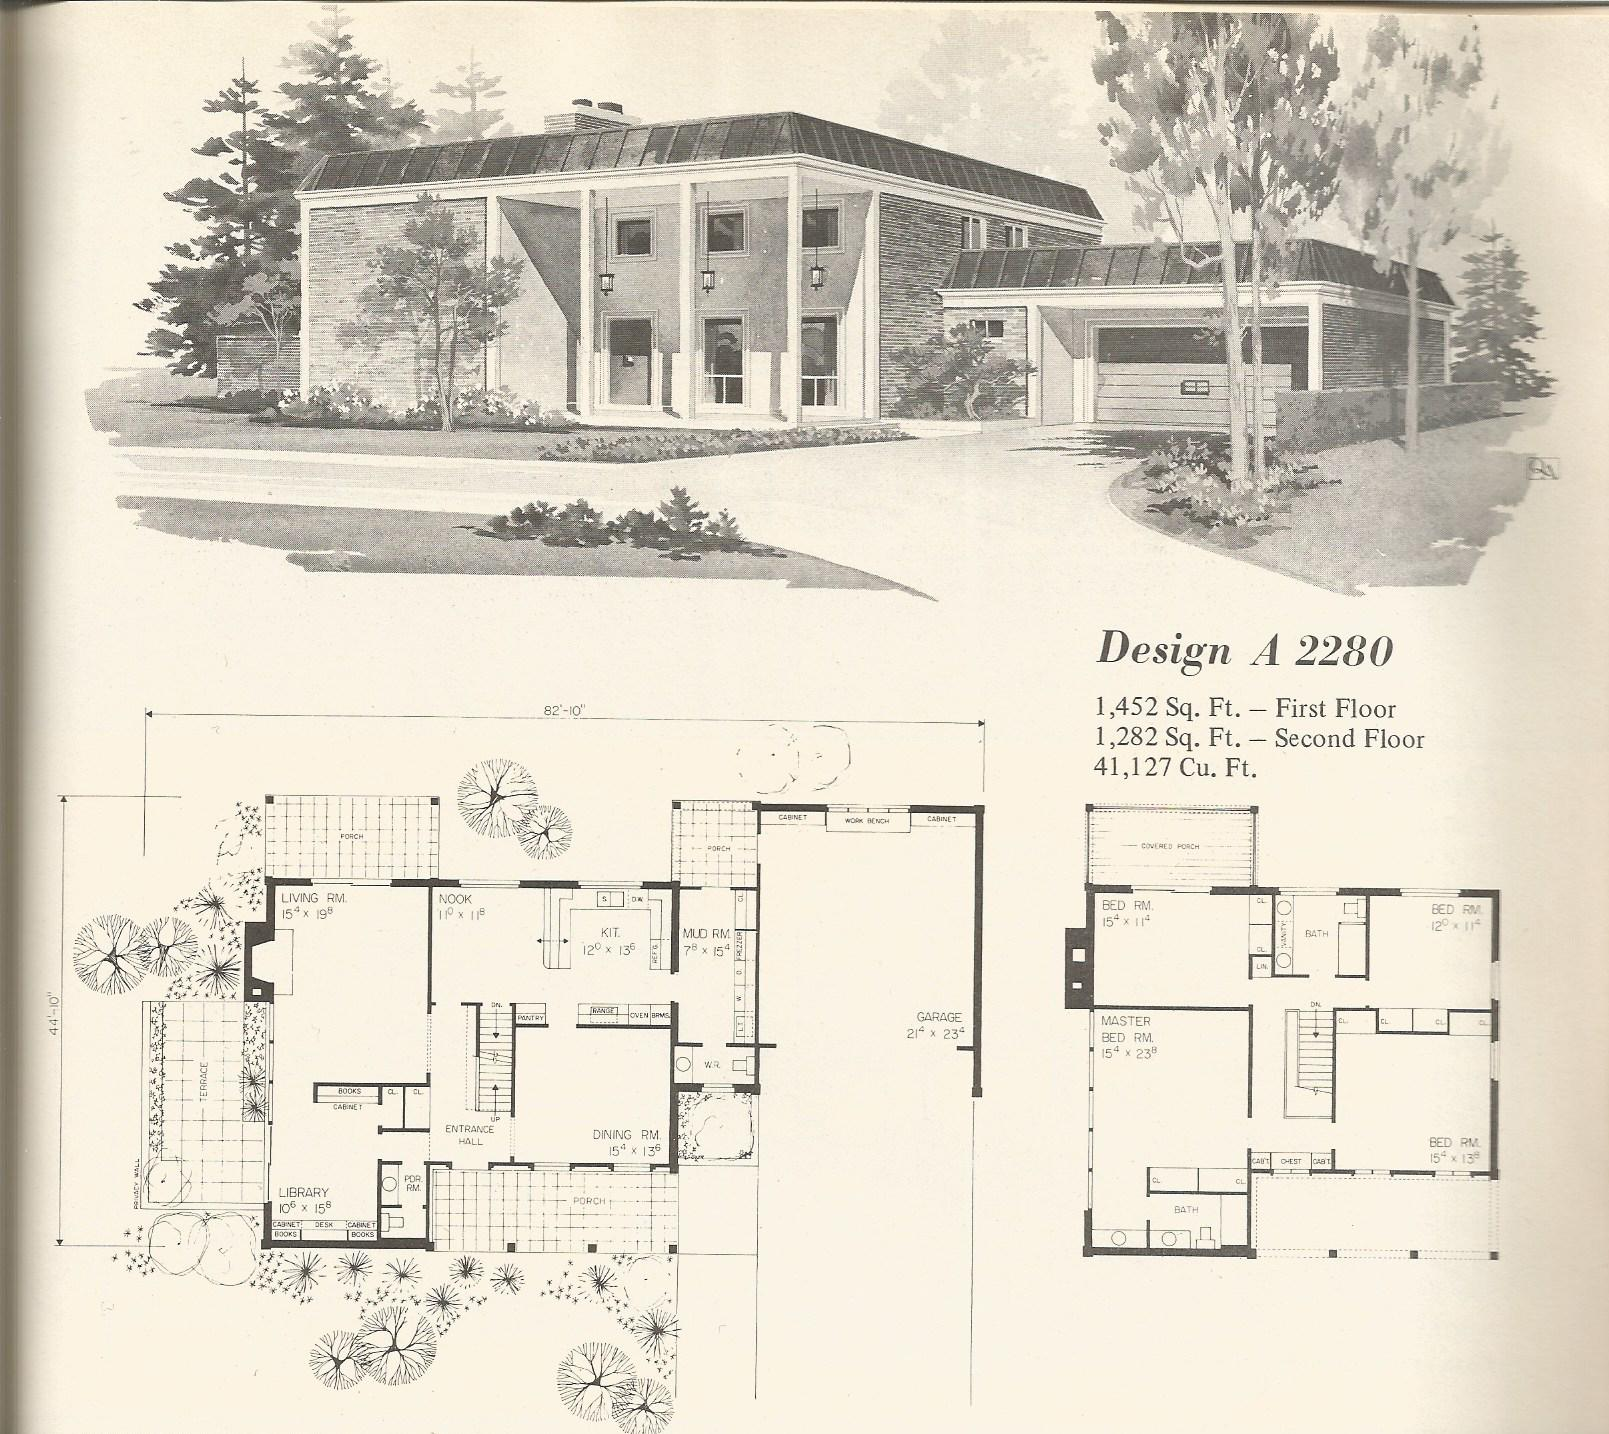 Vintage house plans 2280 antique alter ego for Retro house plans